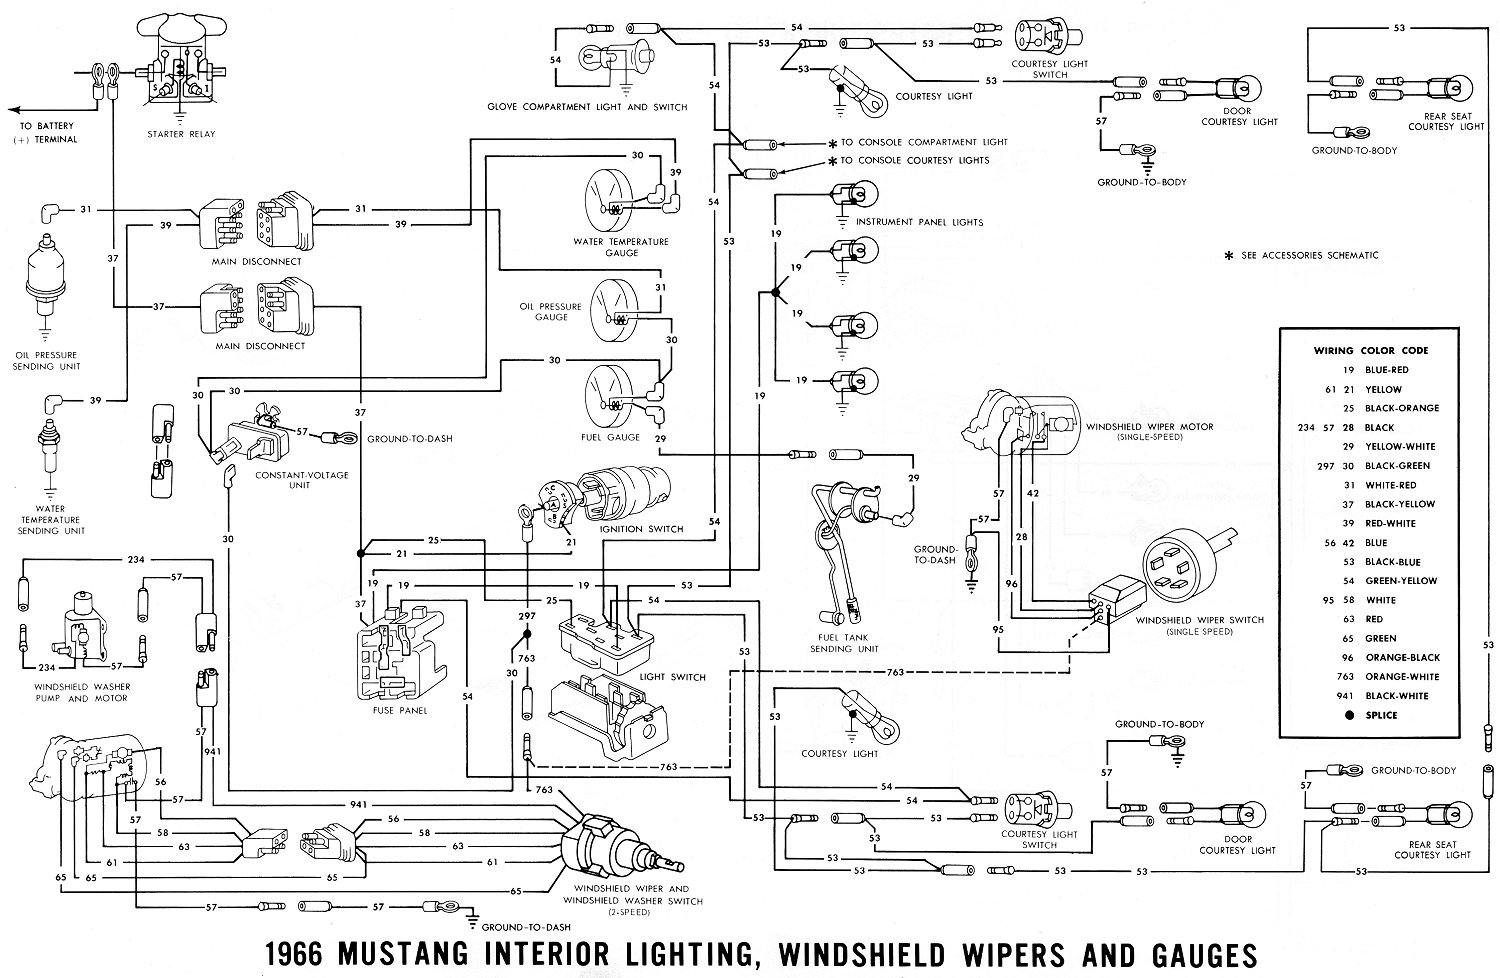 1966 mustang wiring diagrams average joe restoration rh averagejoerestoration com EZ Wire Wiring Harness Diagram Wire Harness Design